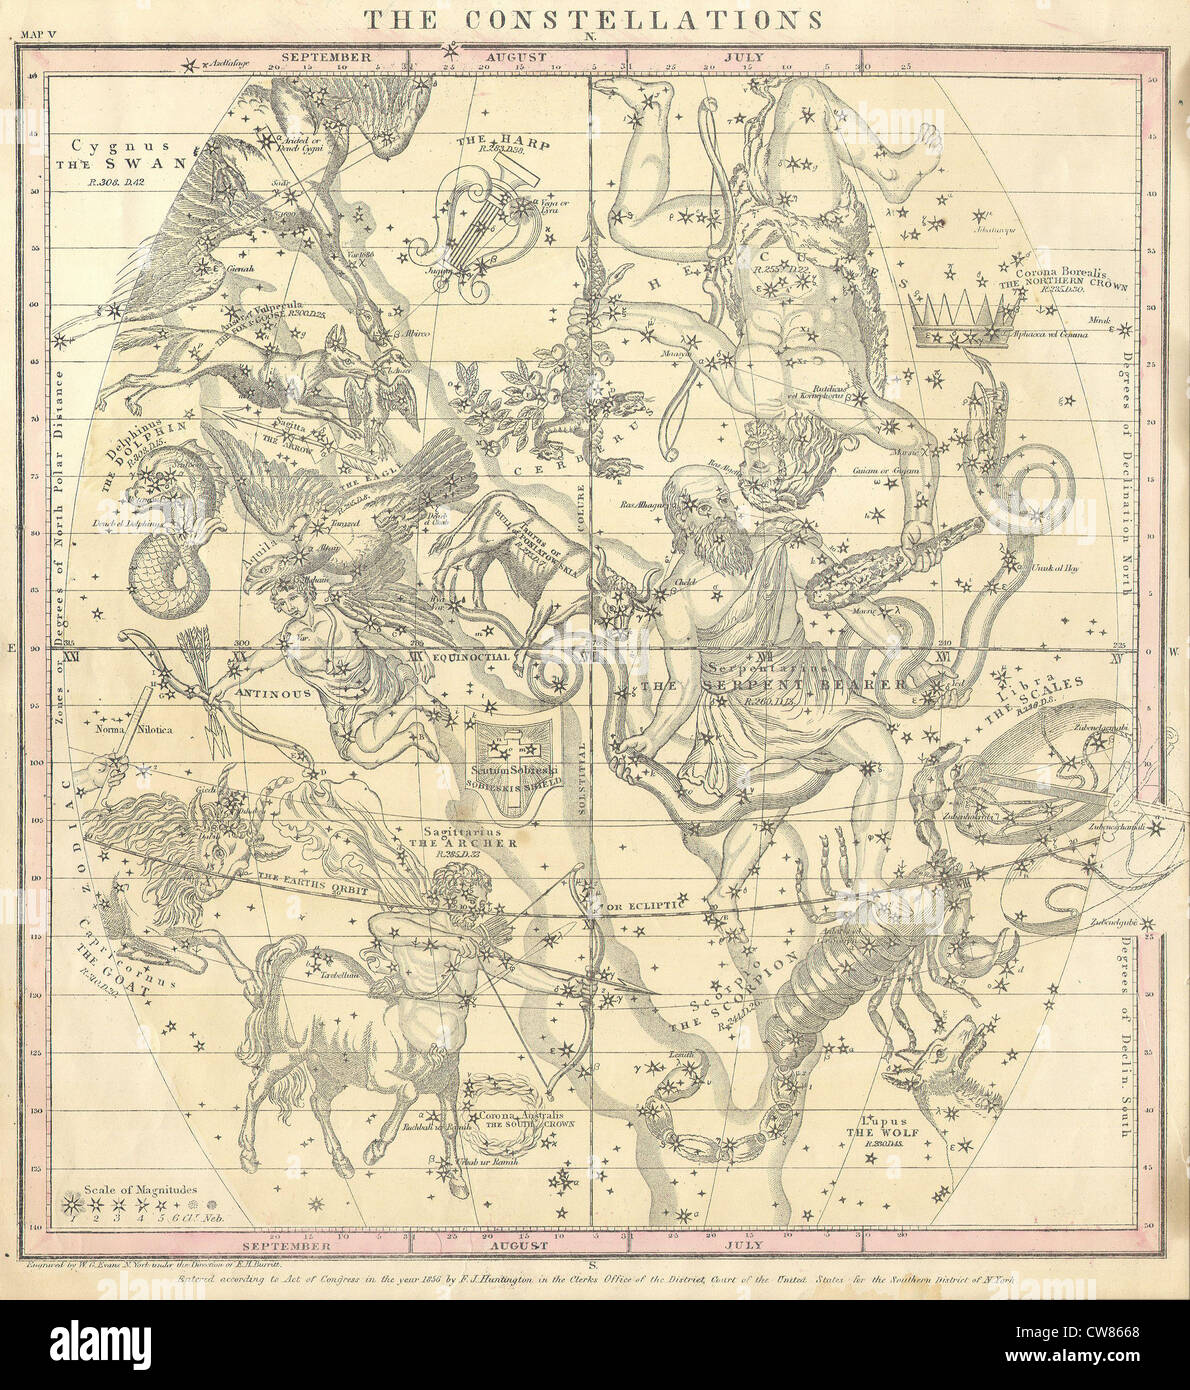 1856 Burritt - Huntington Map of the Constellations or Stars in July, August ^ September - Stock Image